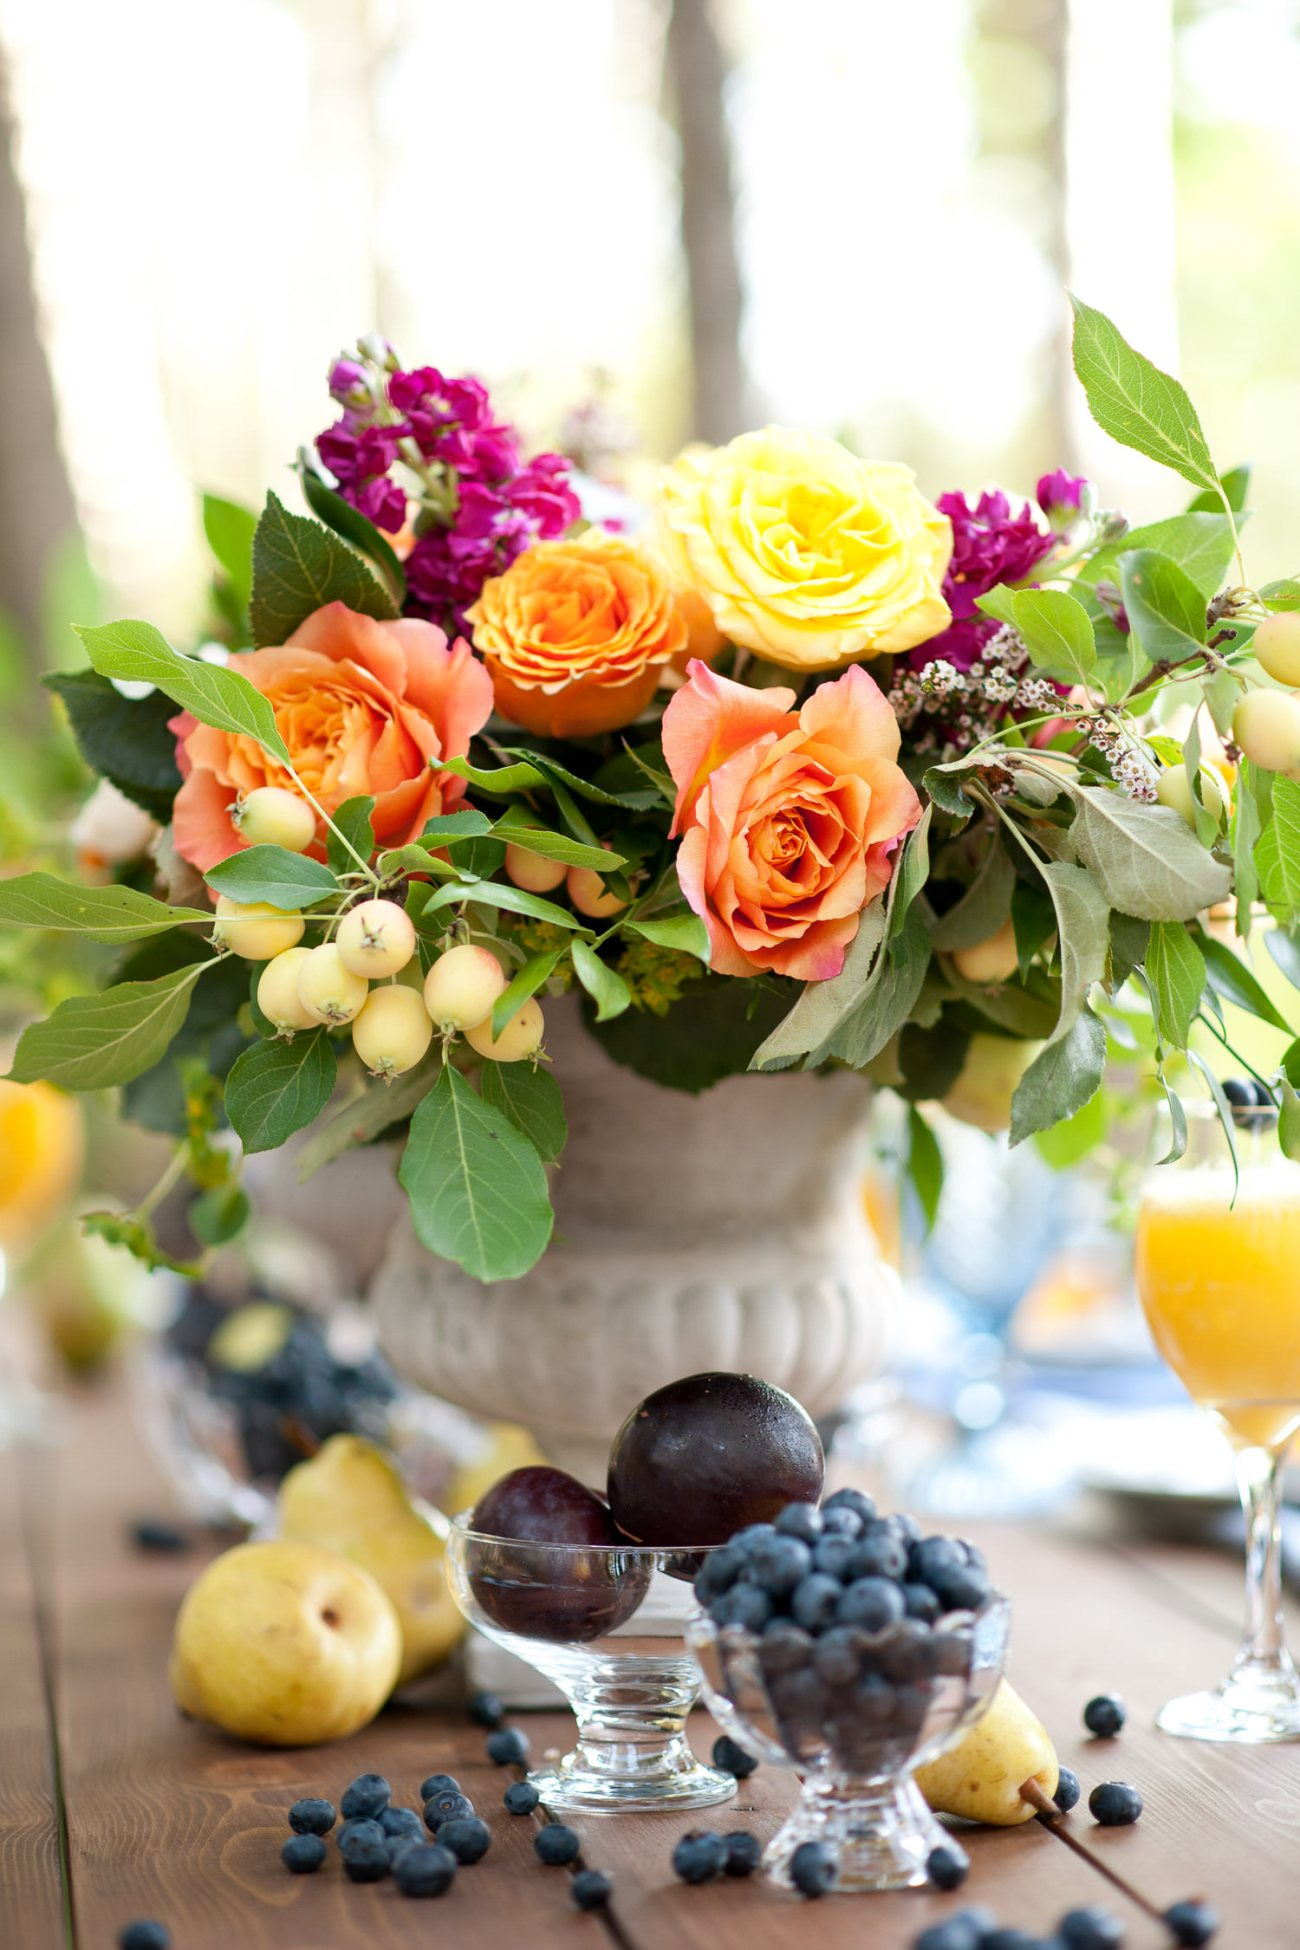 Plums, pears and blueberries on a brunch table captured by Tara Whittaker Photography